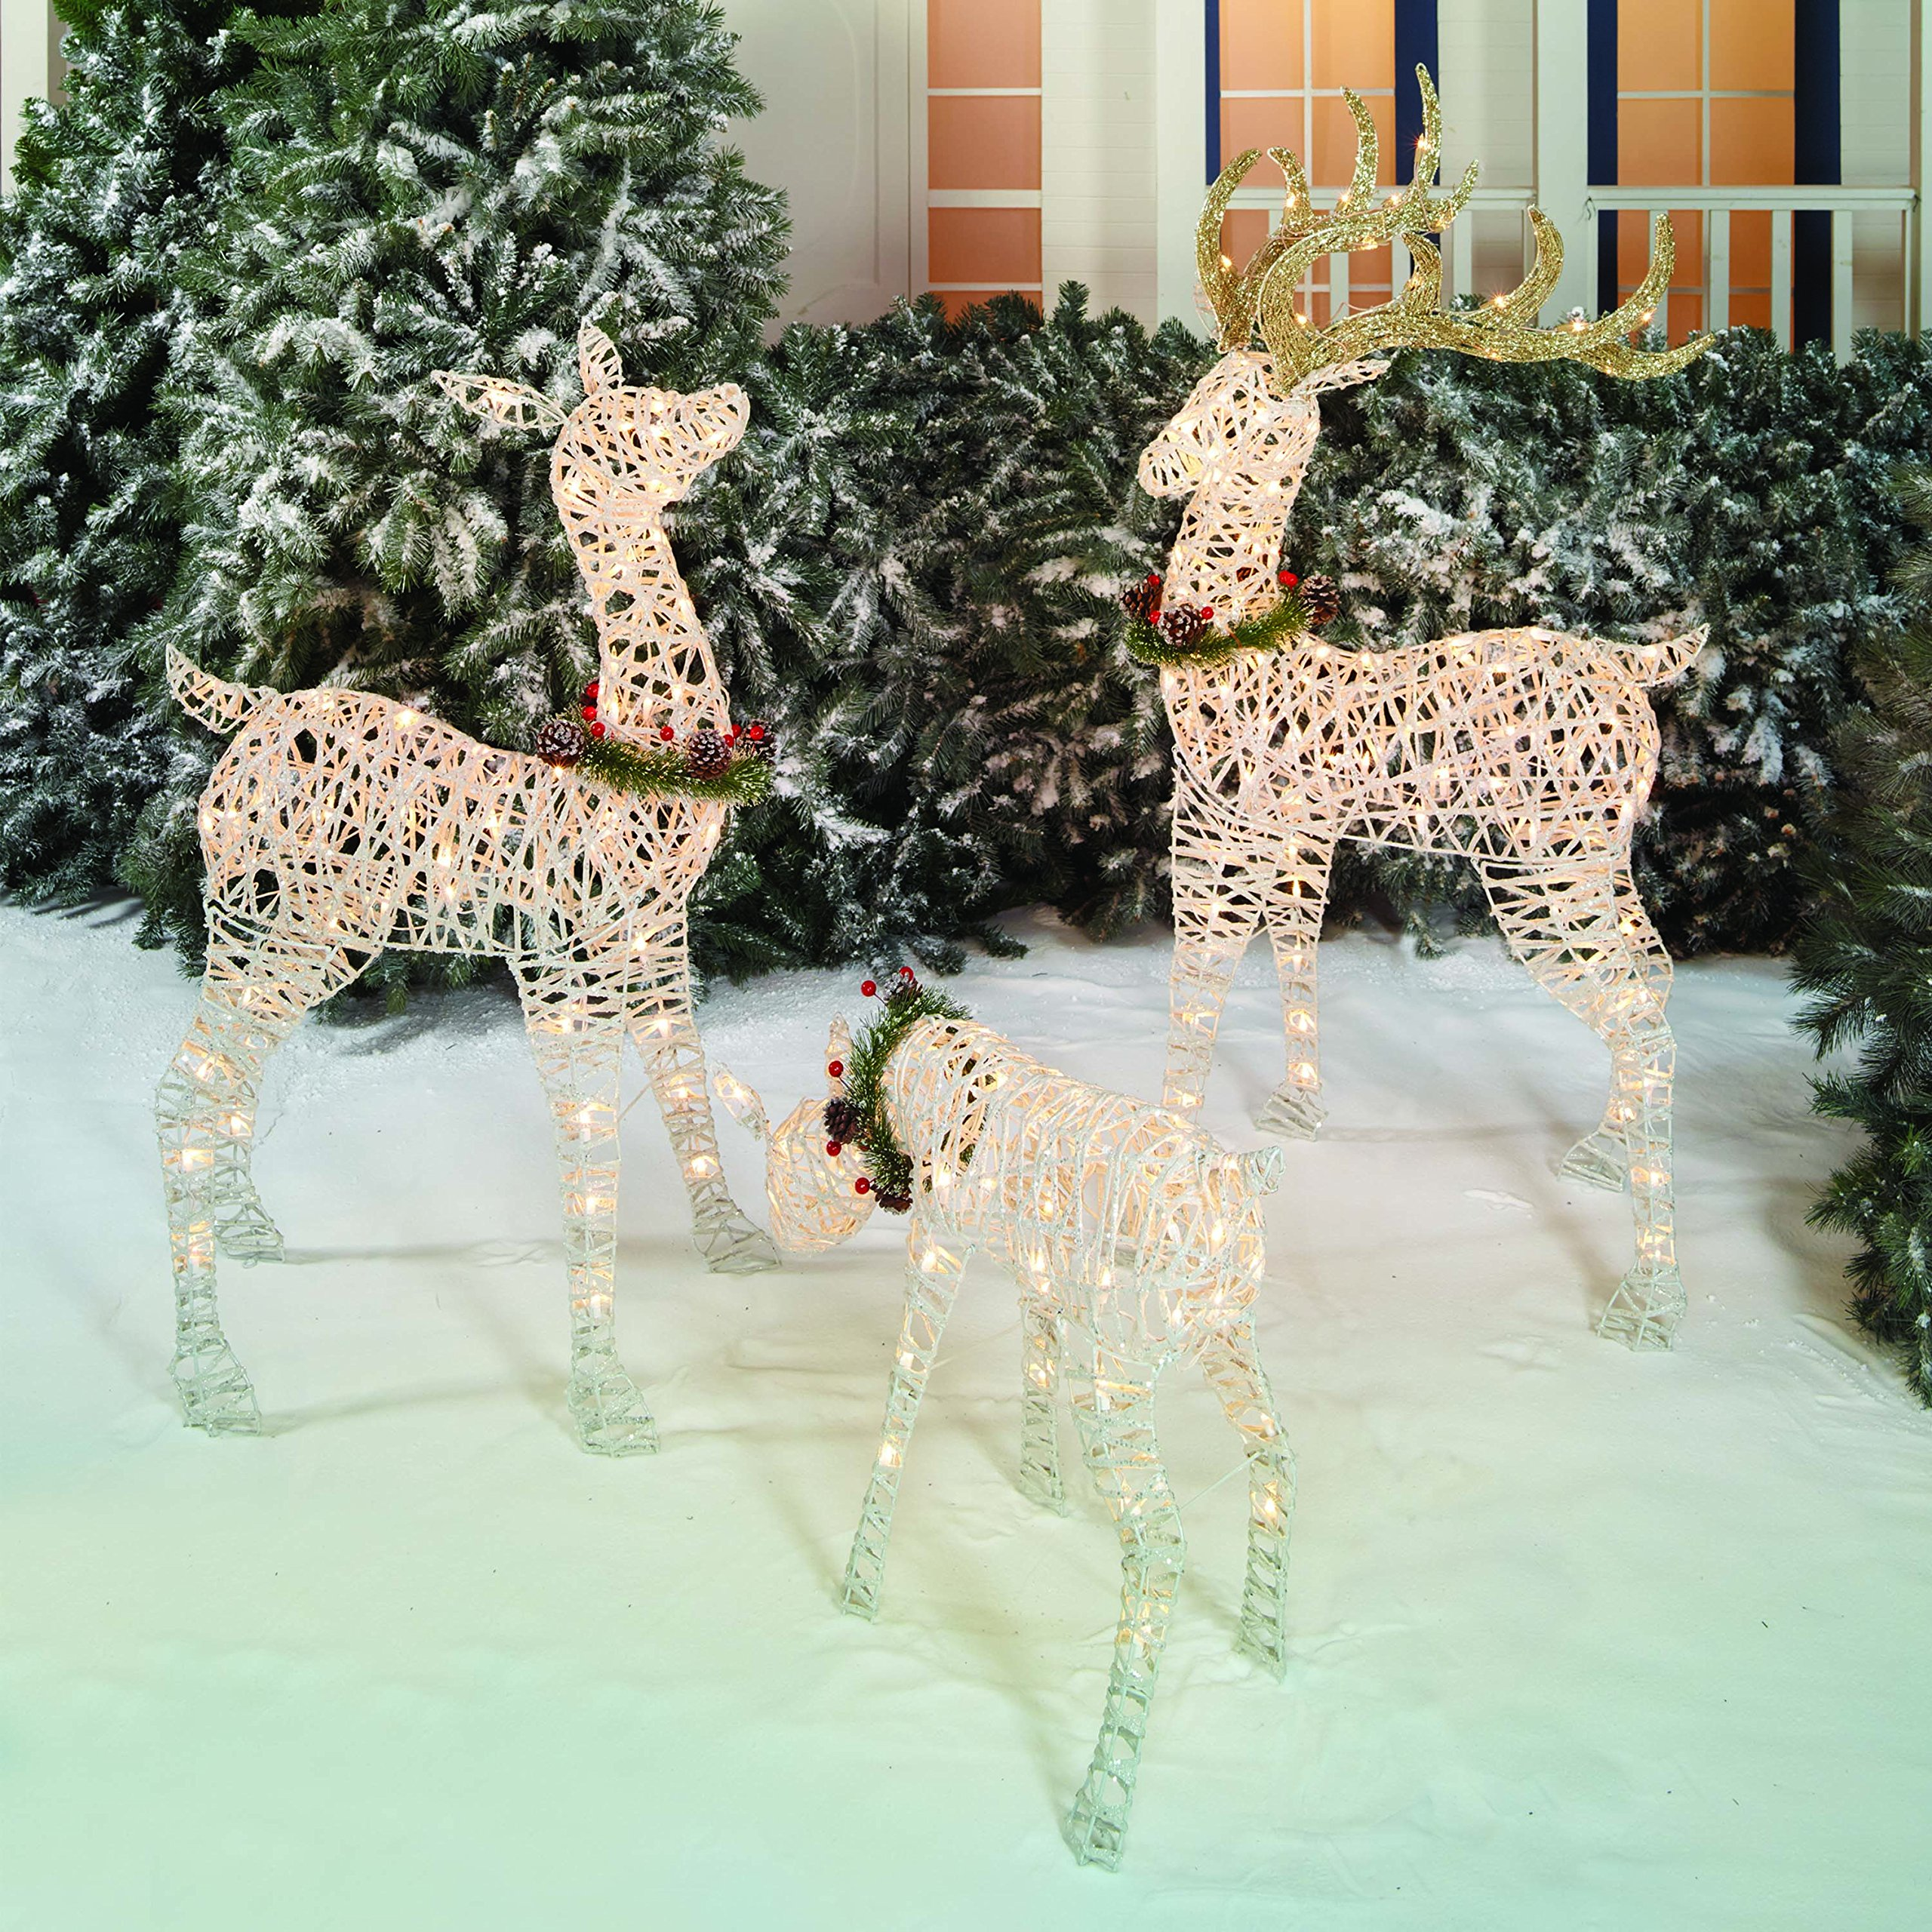 outdoor christmas reindeer family 3 set 220 lights 52 buck 44 doe 28 - Christmas Lawn Decorations Amazon